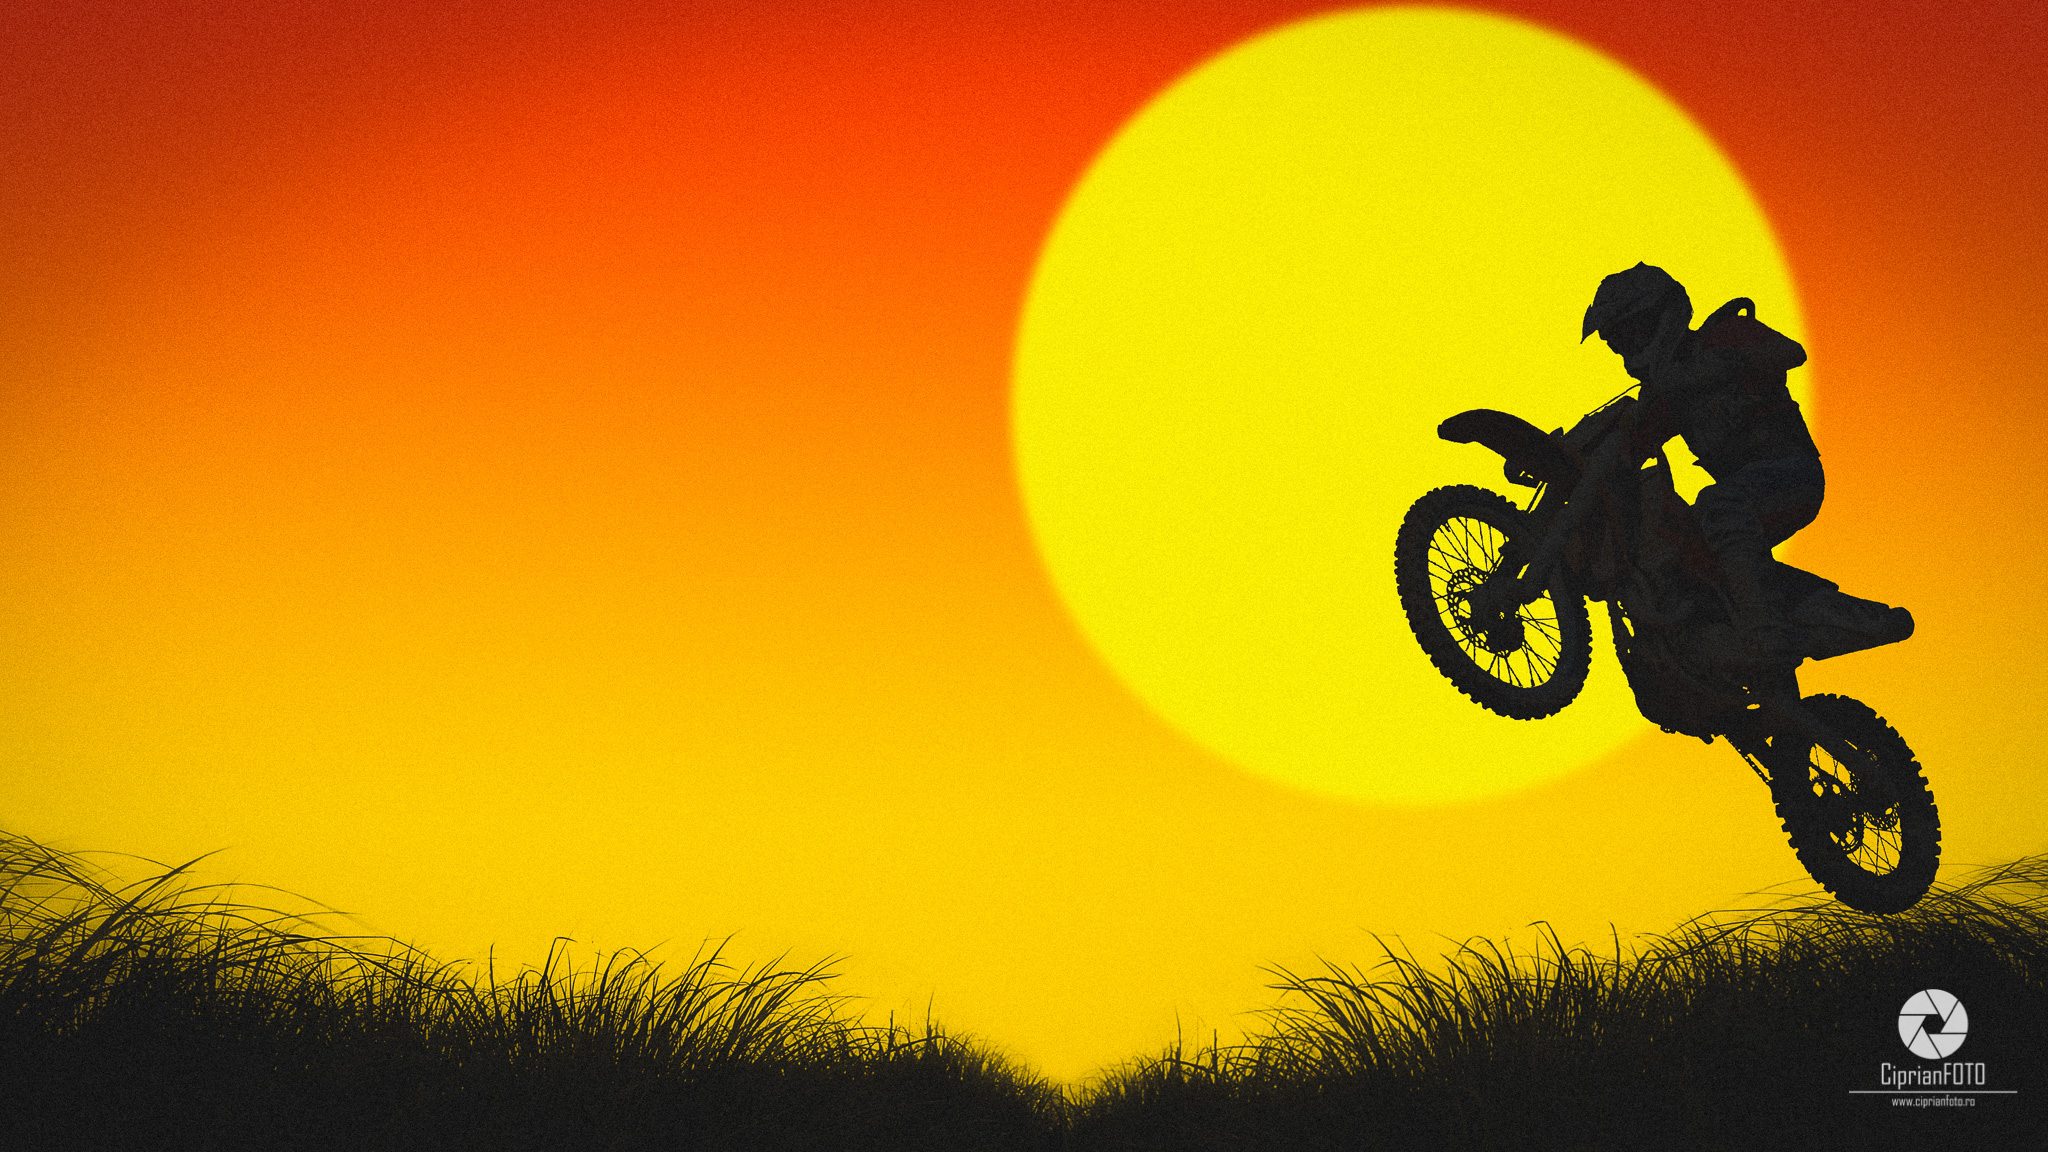 Photoshop CC 2020 Tutorial, Jumping, Motocross, Silhouette Effect, Photoshop, CiprianFOTO, Ciprian FOTO